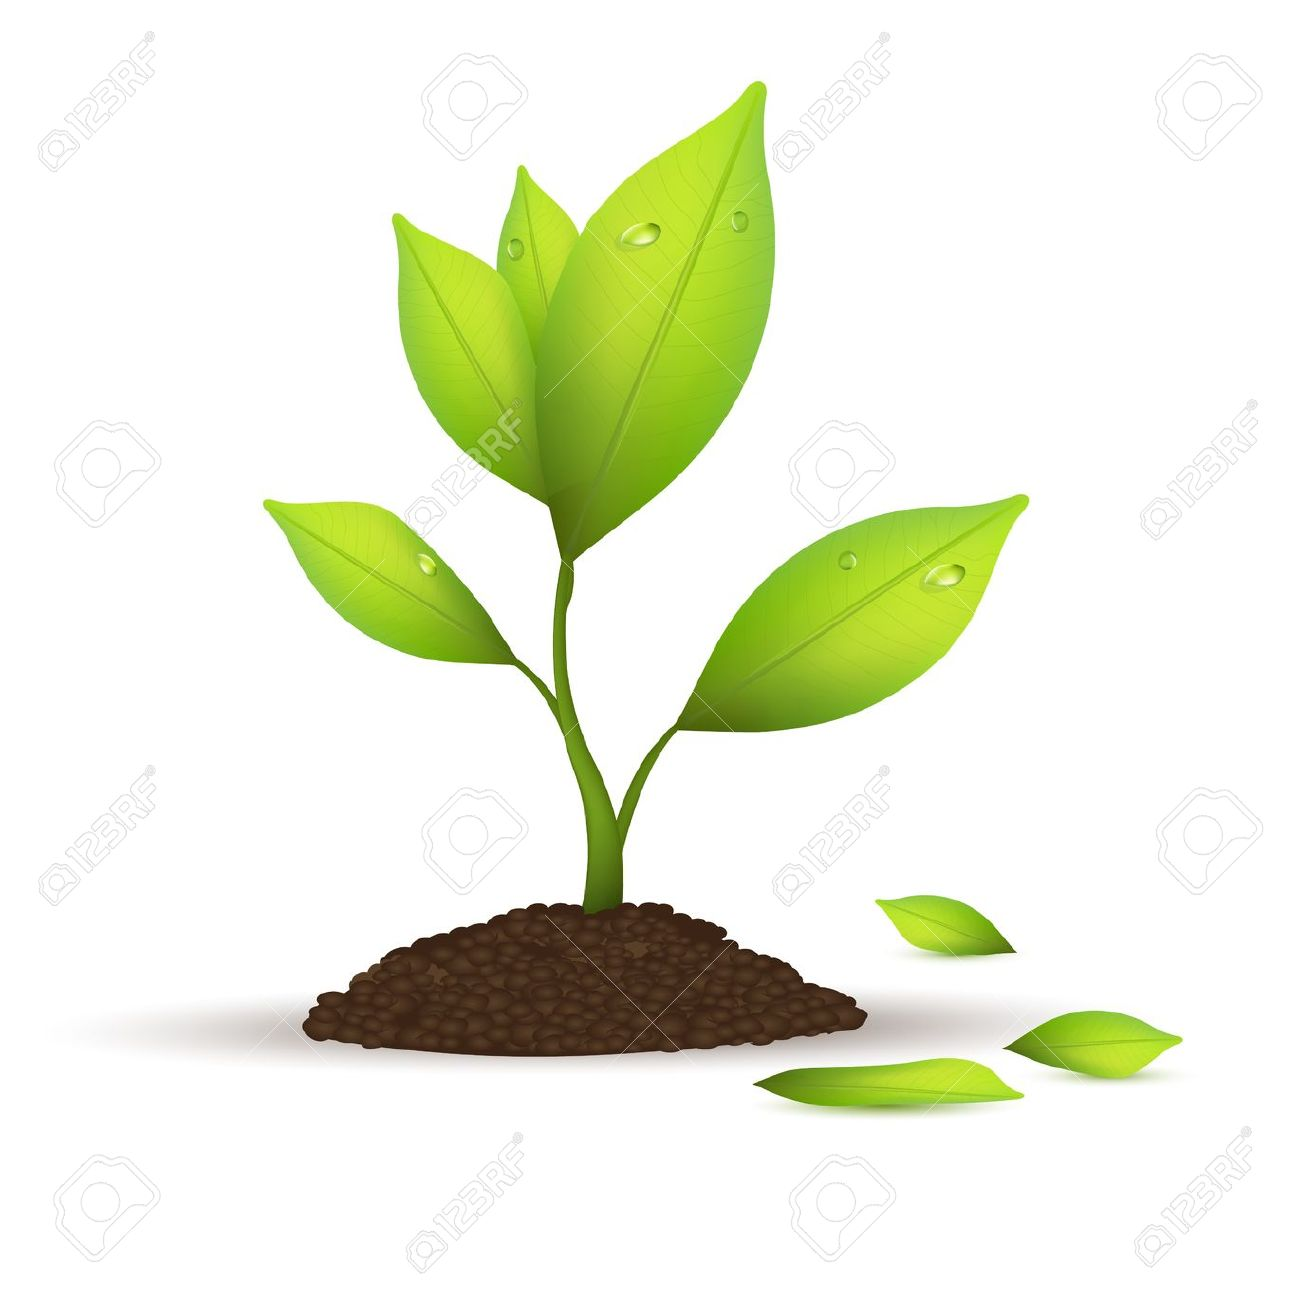 Plant clipart images vector freeuse Plants Clip Art Free | Clipart Panda - Free Clipart Images vector freeuse